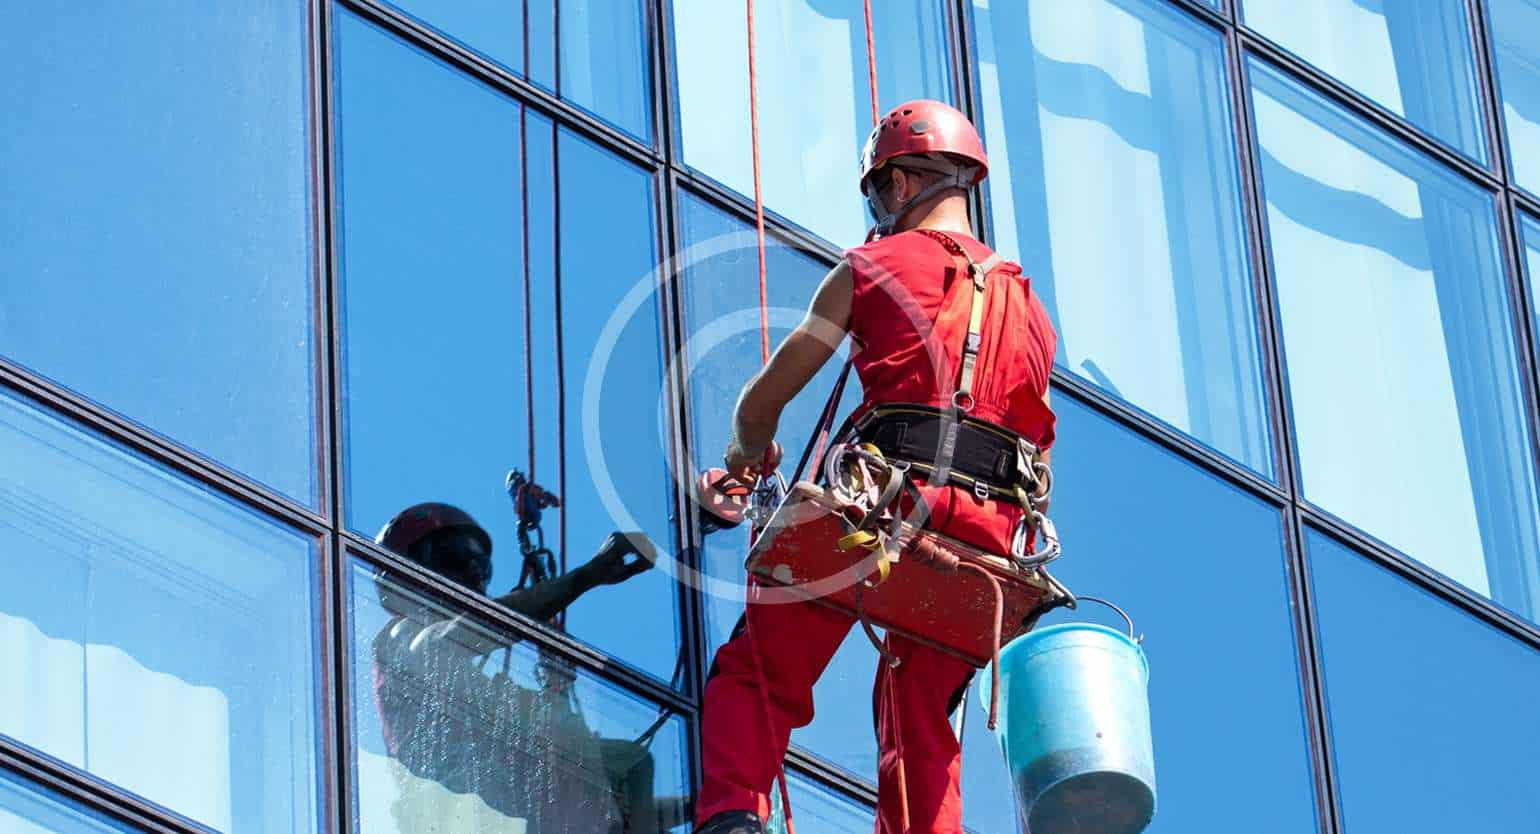 Man cleaning glasses of corporate building in Red Dress